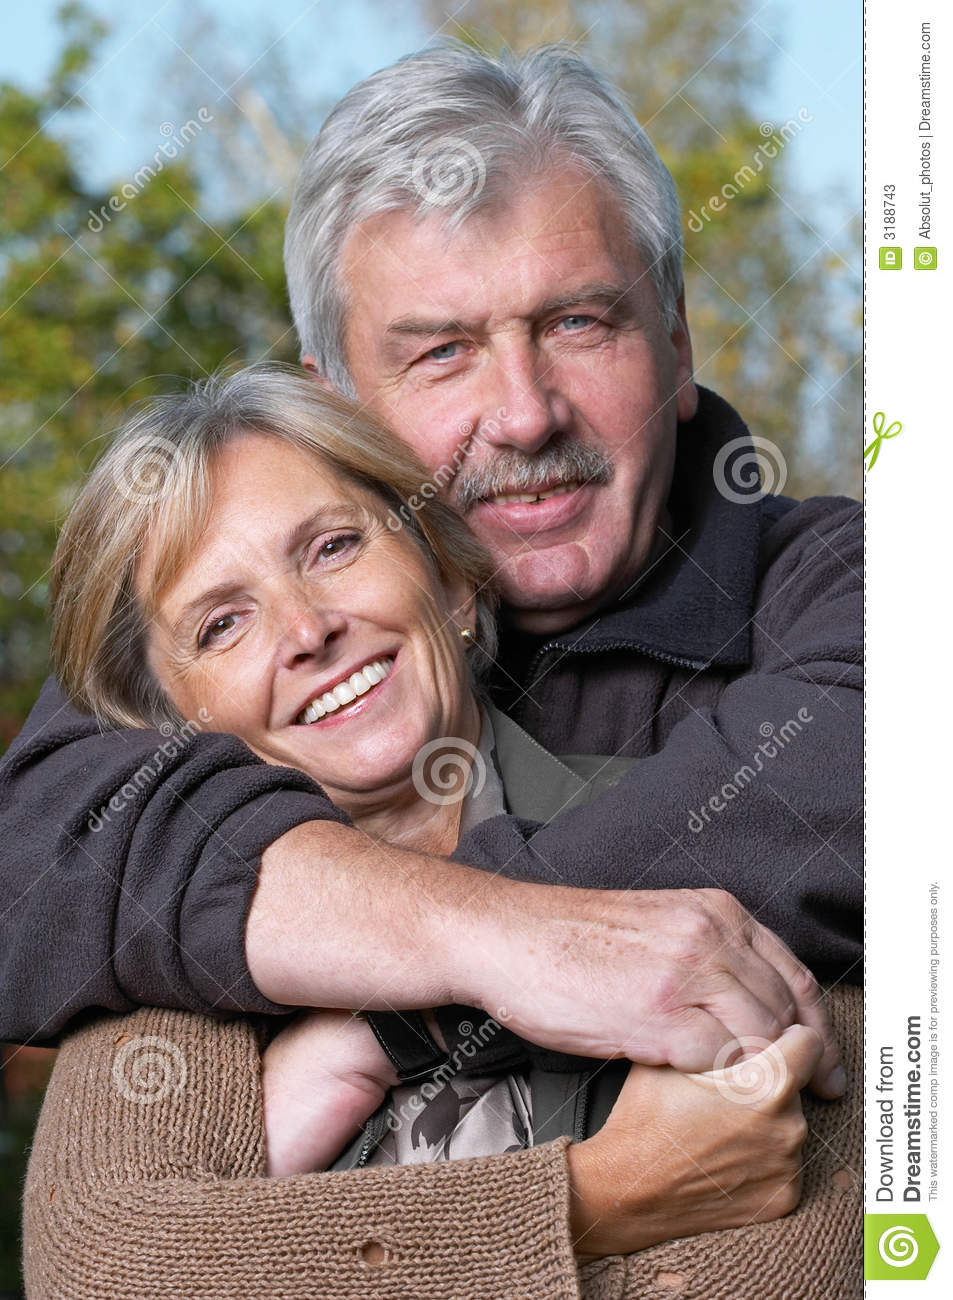 https://thumbs.dreamstime.com/z/happy-mature-couple-3188743.jpg